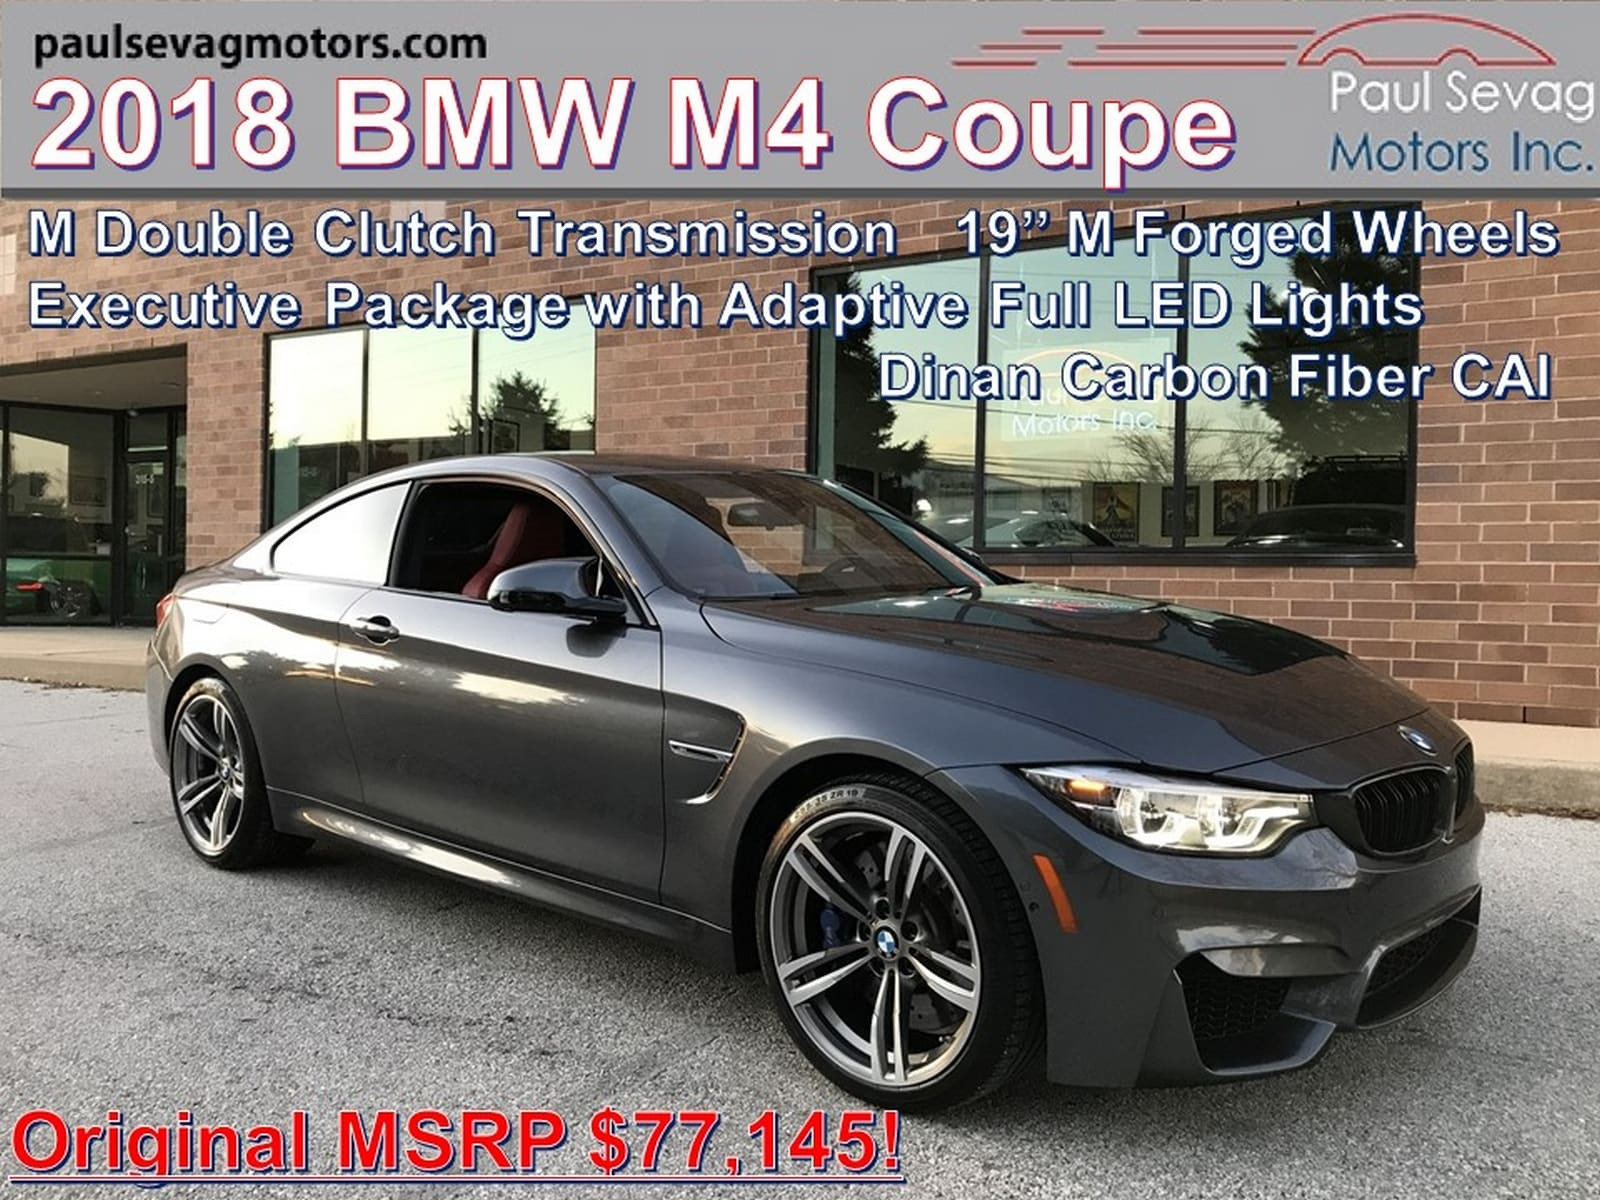 2018 BMW M4 Coupe M Double Clutch Transmission/Executive Package